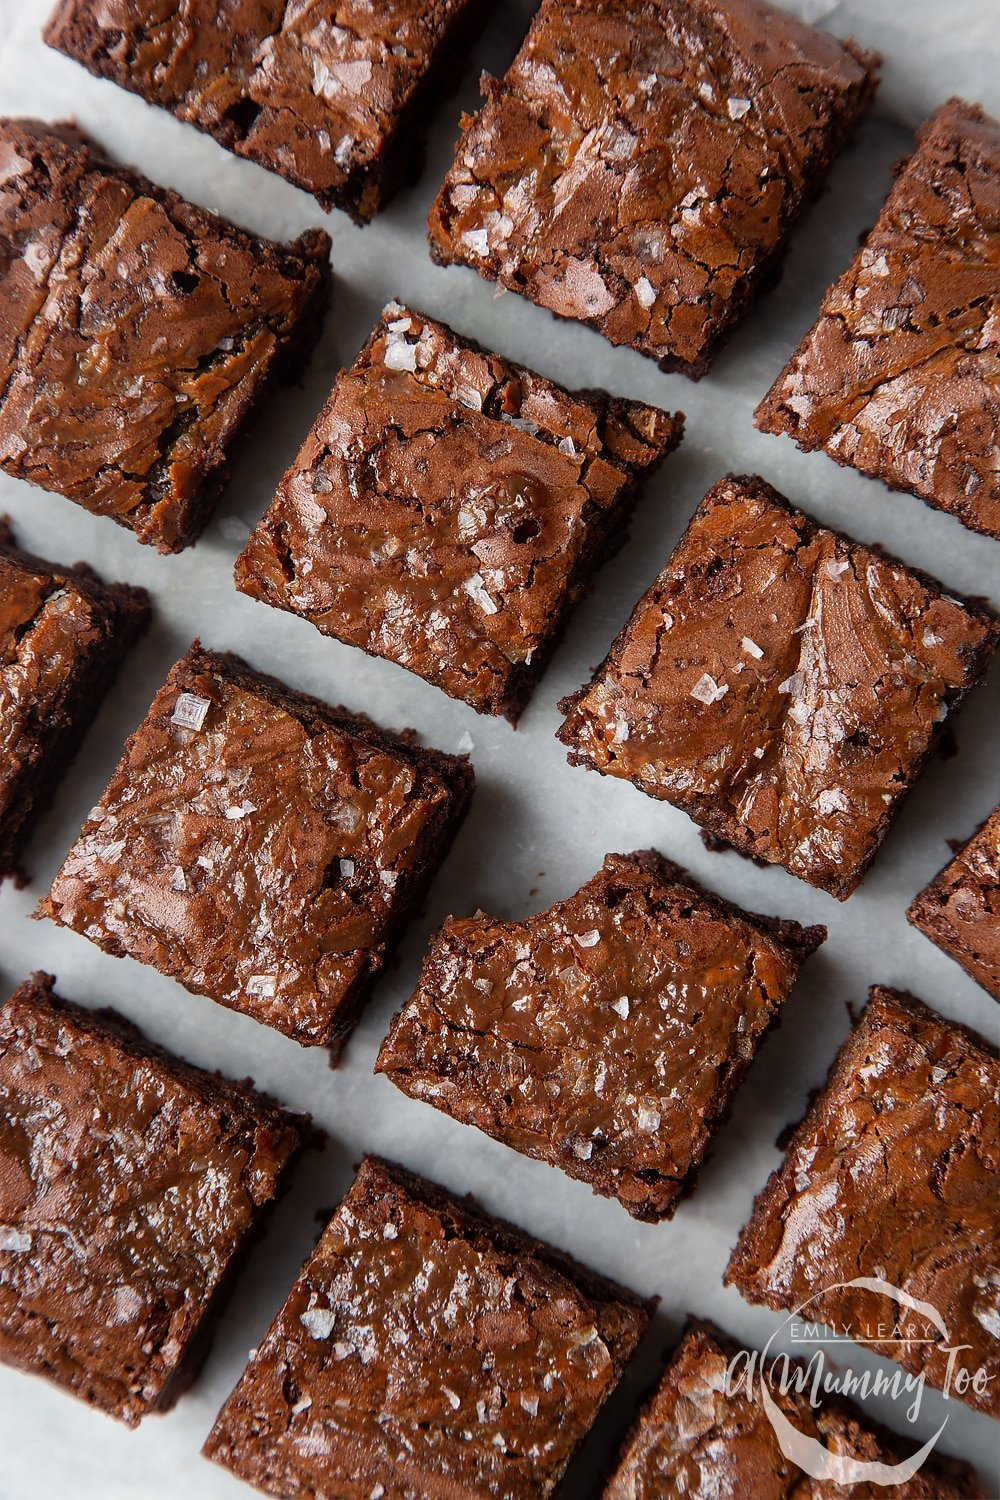 Slices of gooey salted caramel brownies